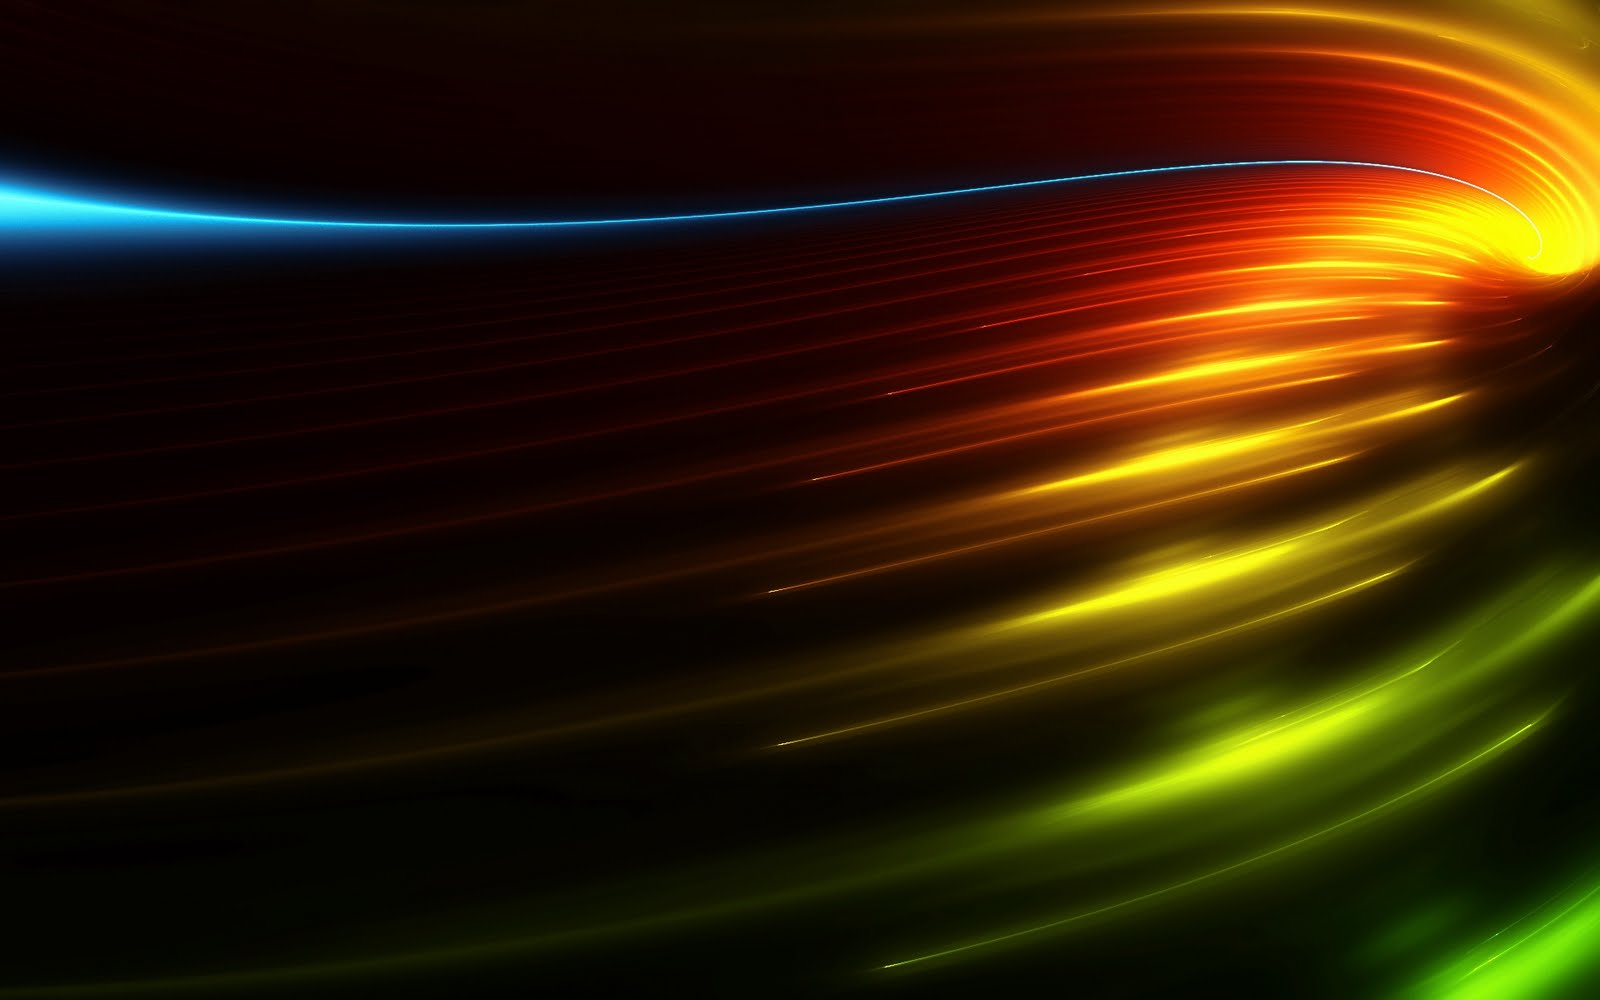 http://1.bp.blogspot.com/-haf4Pdt6dVE/TYjRxf99RgI/AAAAAAAAYh0/lA3YLh4fqVw/s1600/Impressive-Abstract-Colorful-Wallpapers6.jpg